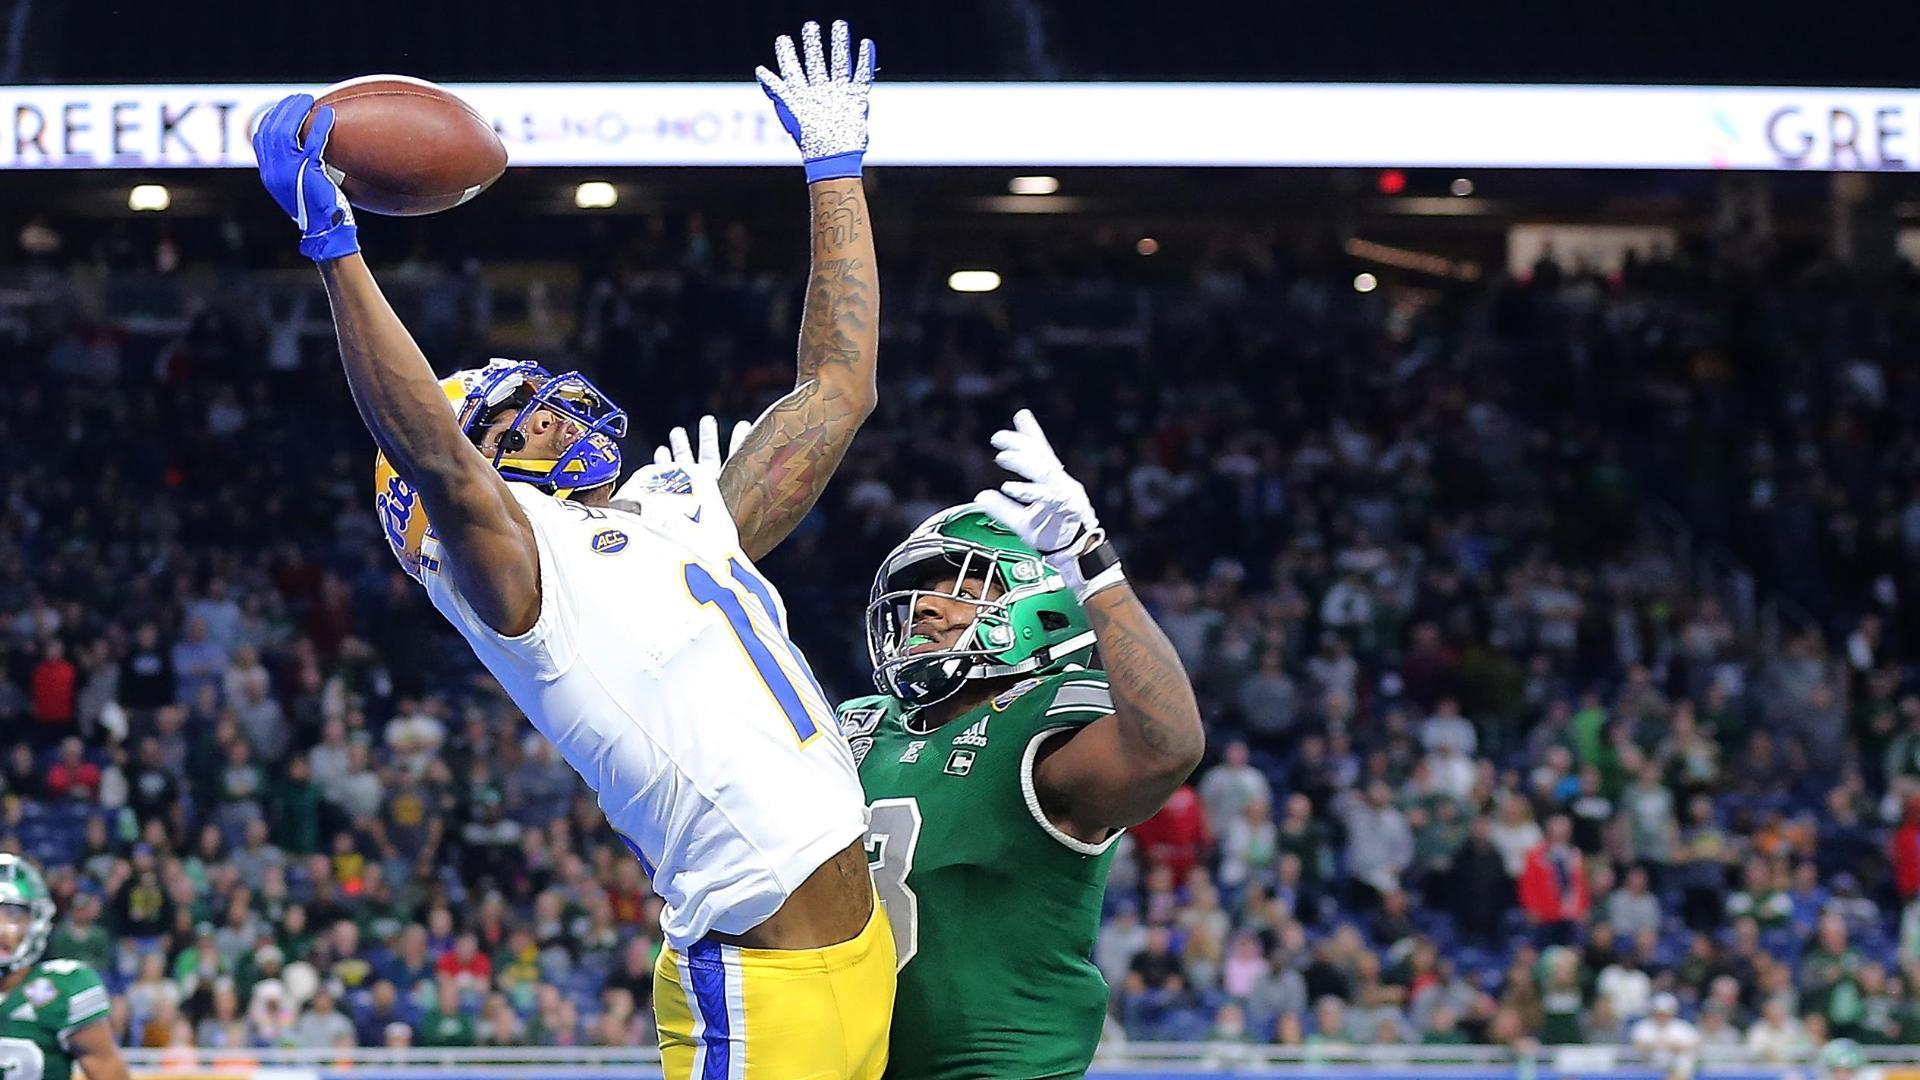 Pitt takes late lead on Mack's incredible end zone grab